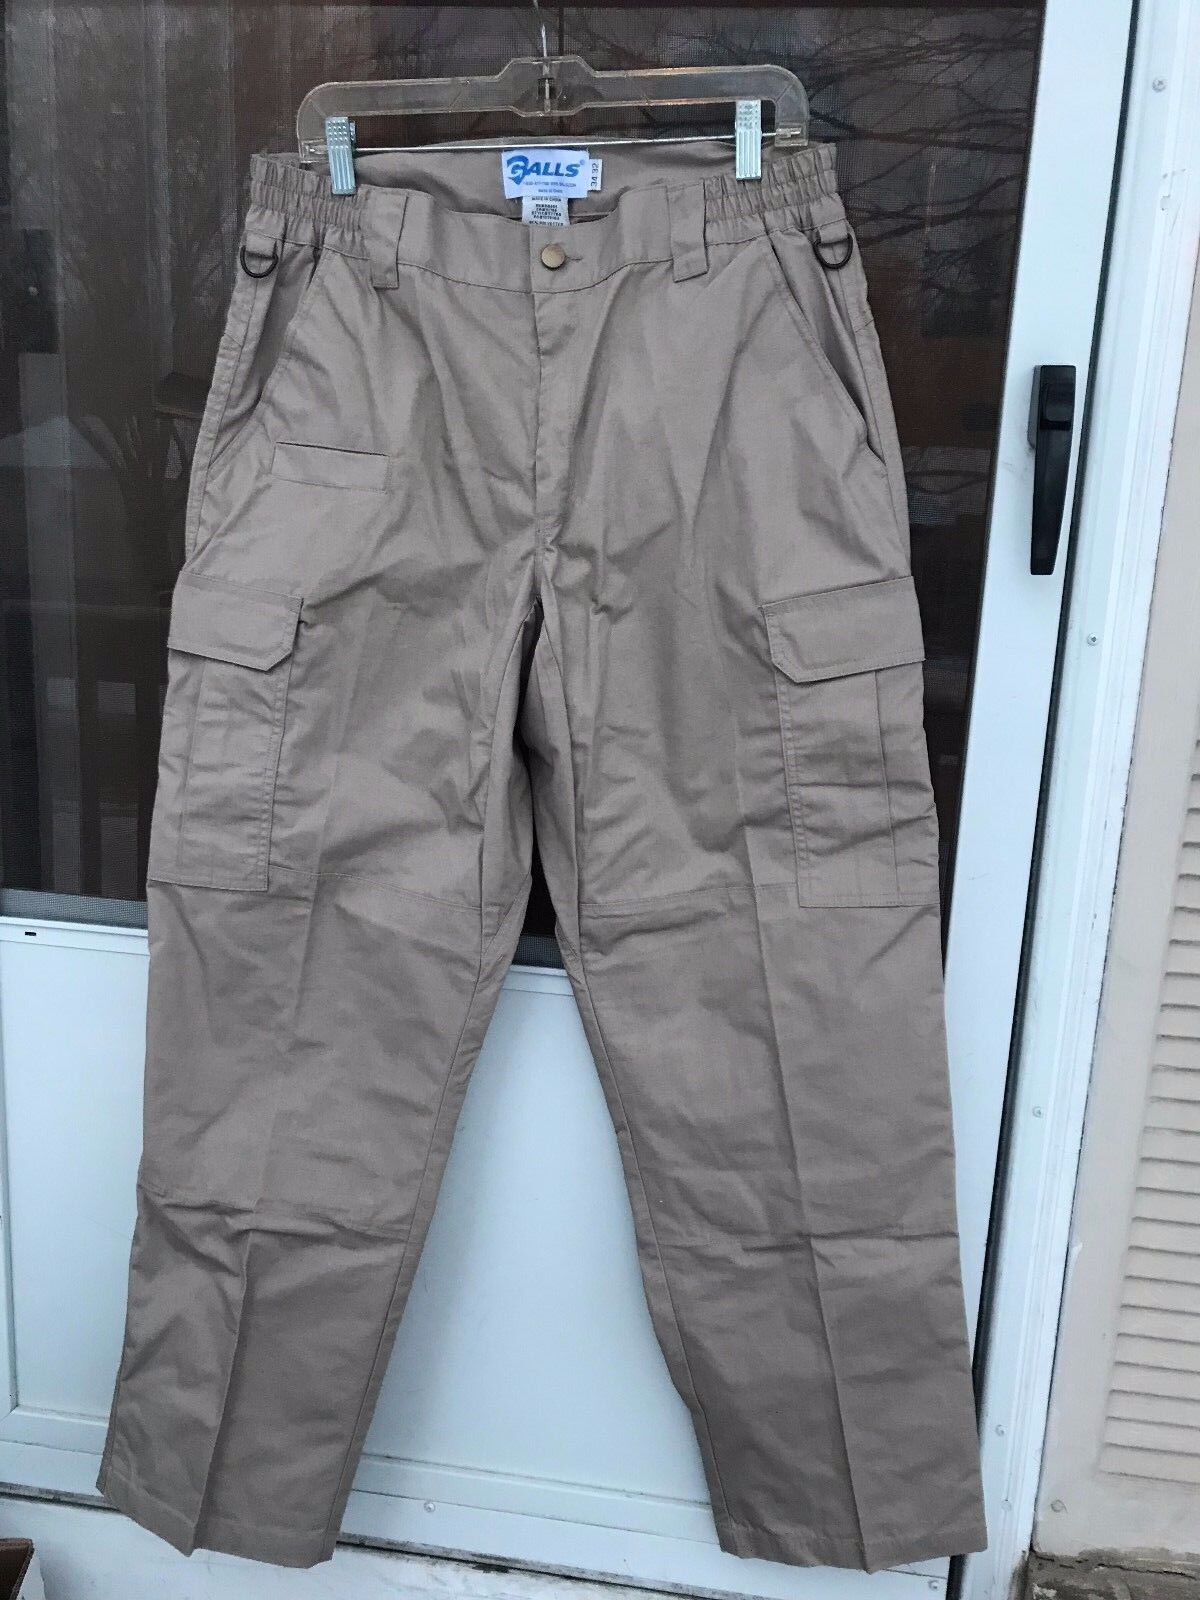 Mens Galls tactical cargo pants BEIGE SIZE 34X32 polyester blend